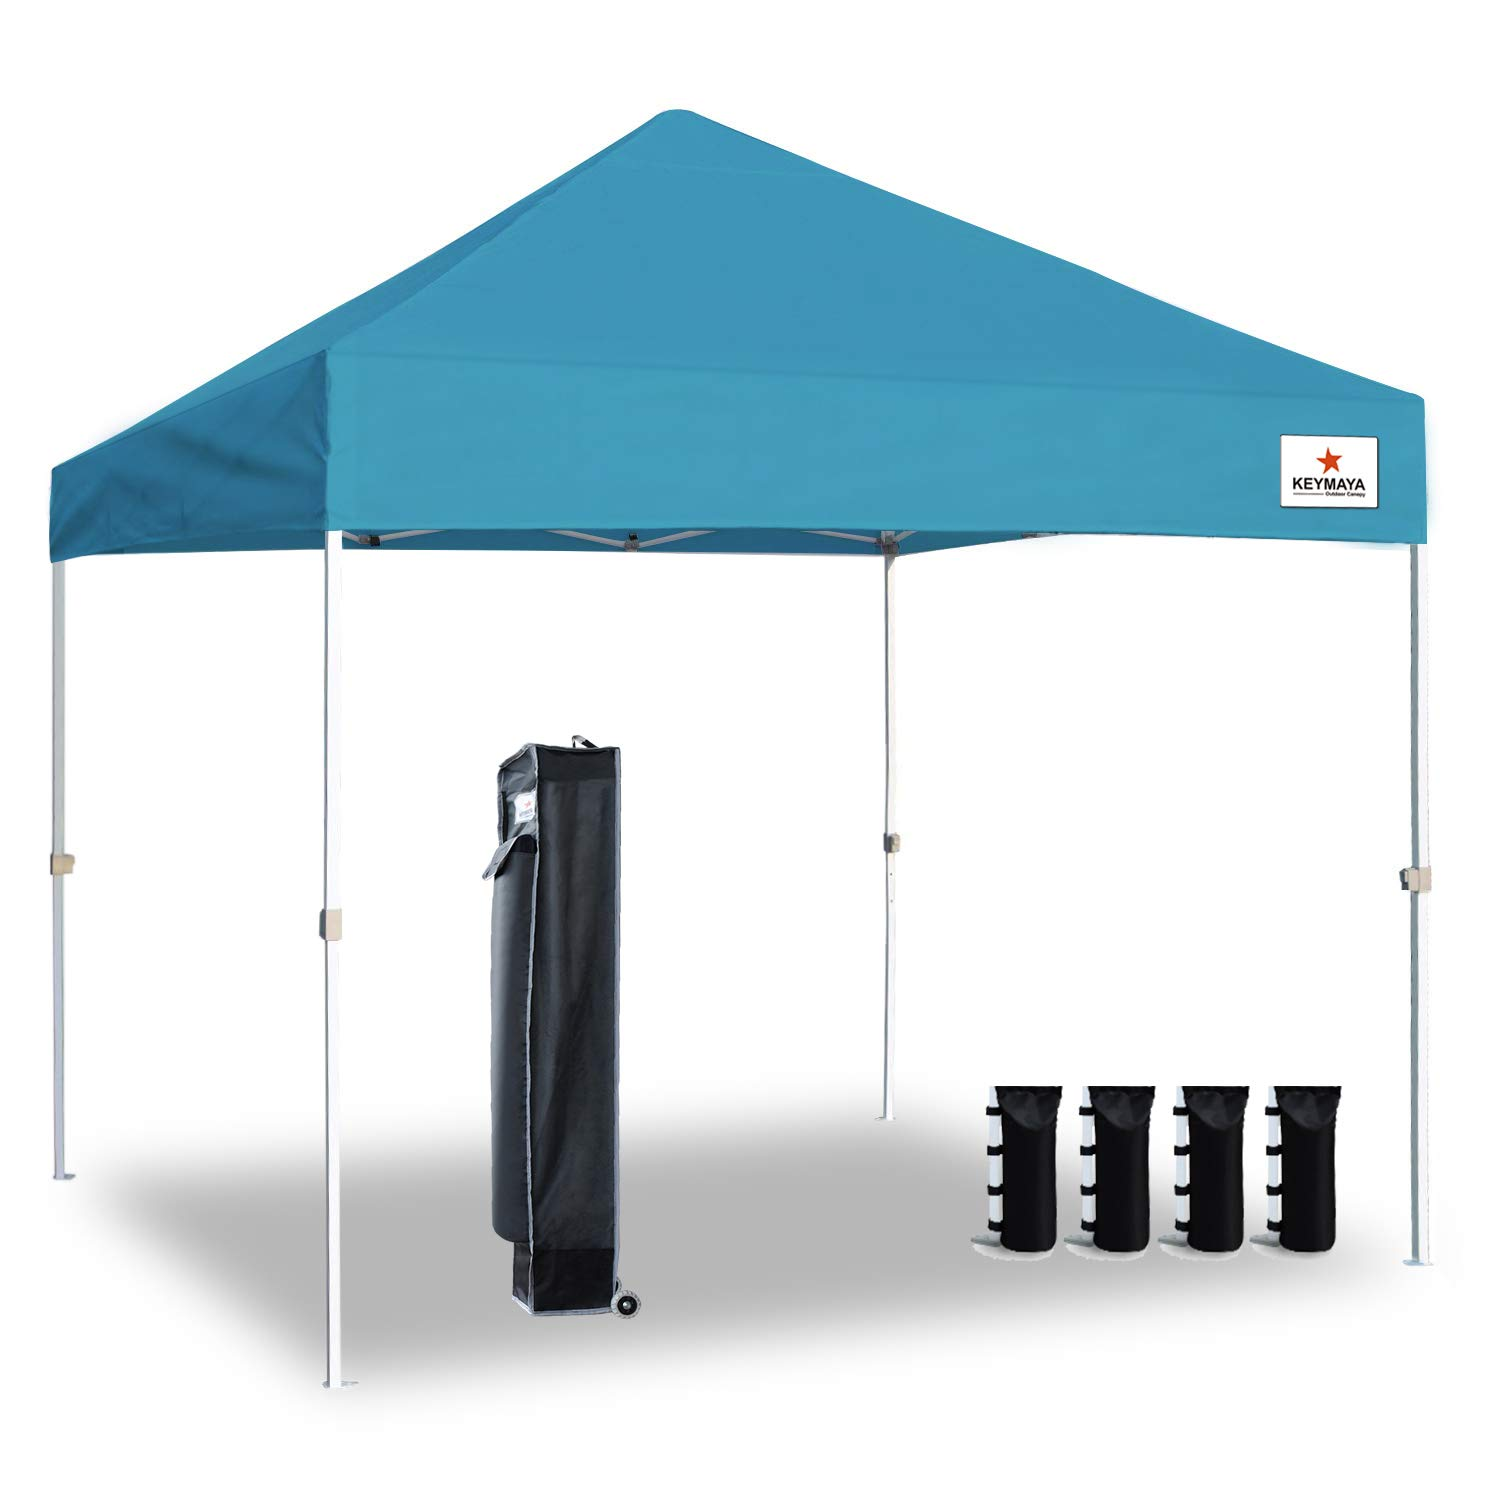 Keymaya 10'x10' Ez Pop Up Canopy Tent Commercial Instant Shelter Canopies Bonus Heavy Duty Weight Bag 4-pc Pack (10x10, A# Turquoise)